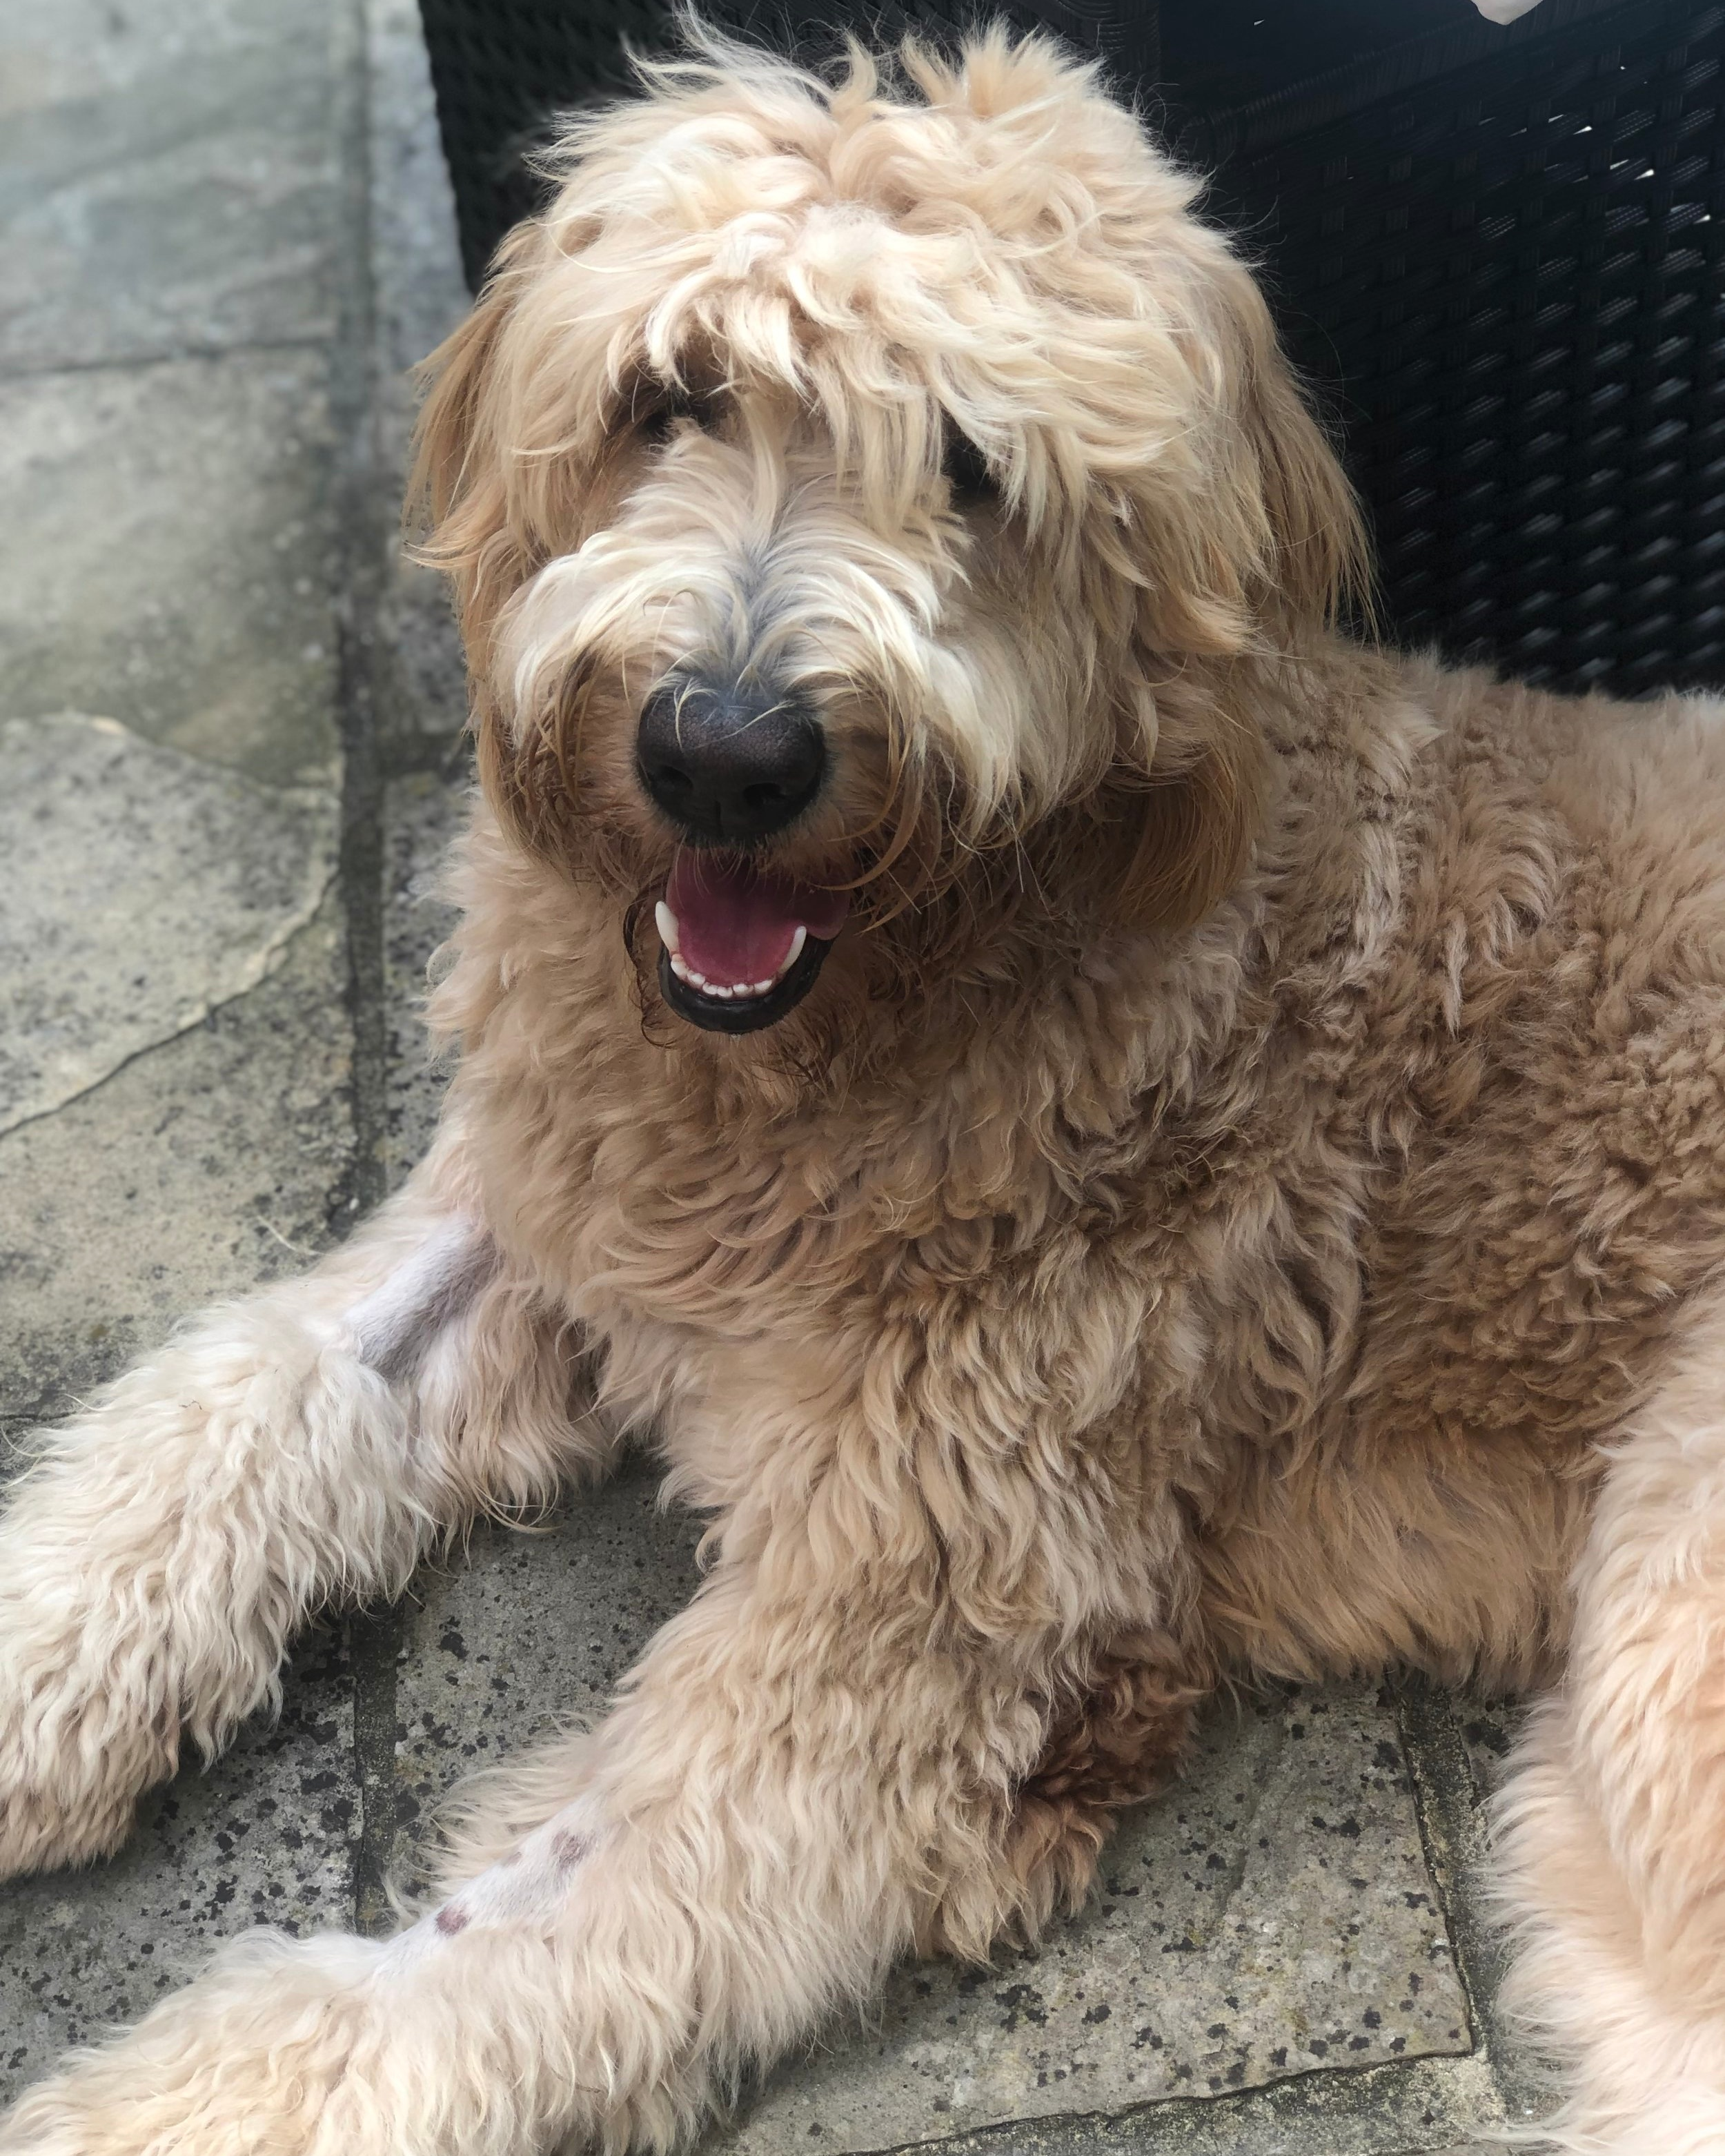 Barley the Goldendoodle